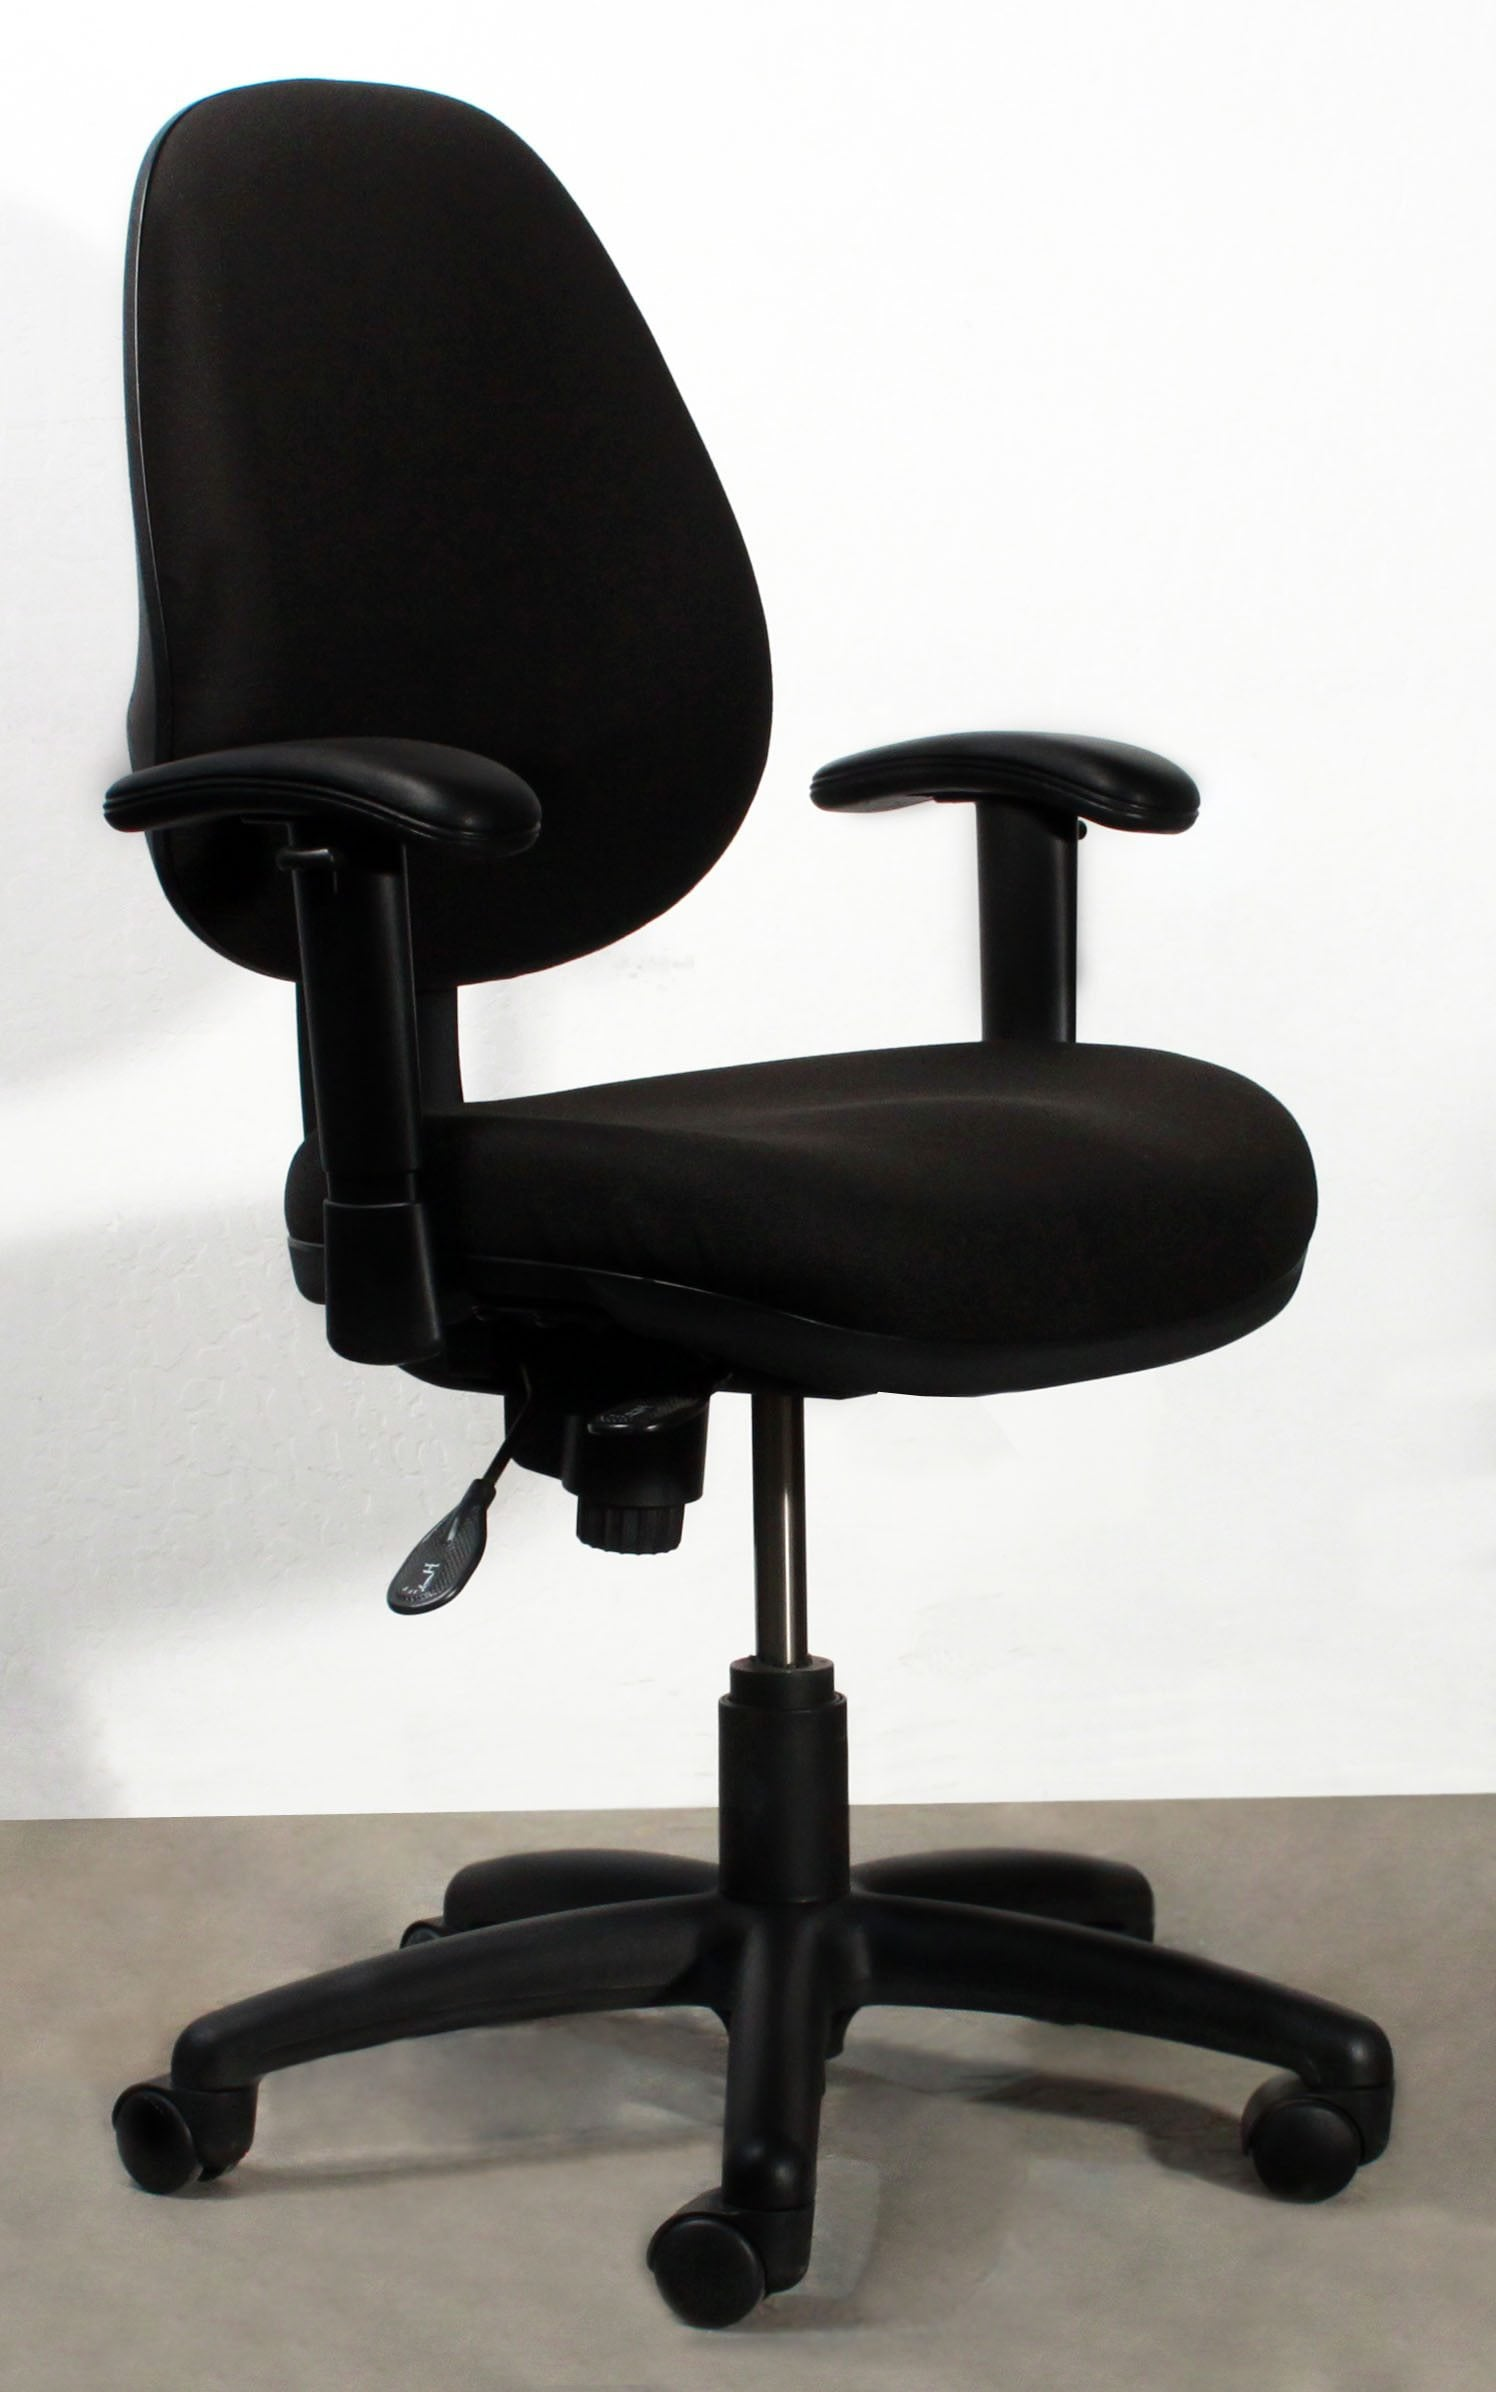 Via Chairs Via Terra Used Task Chair Black National Office